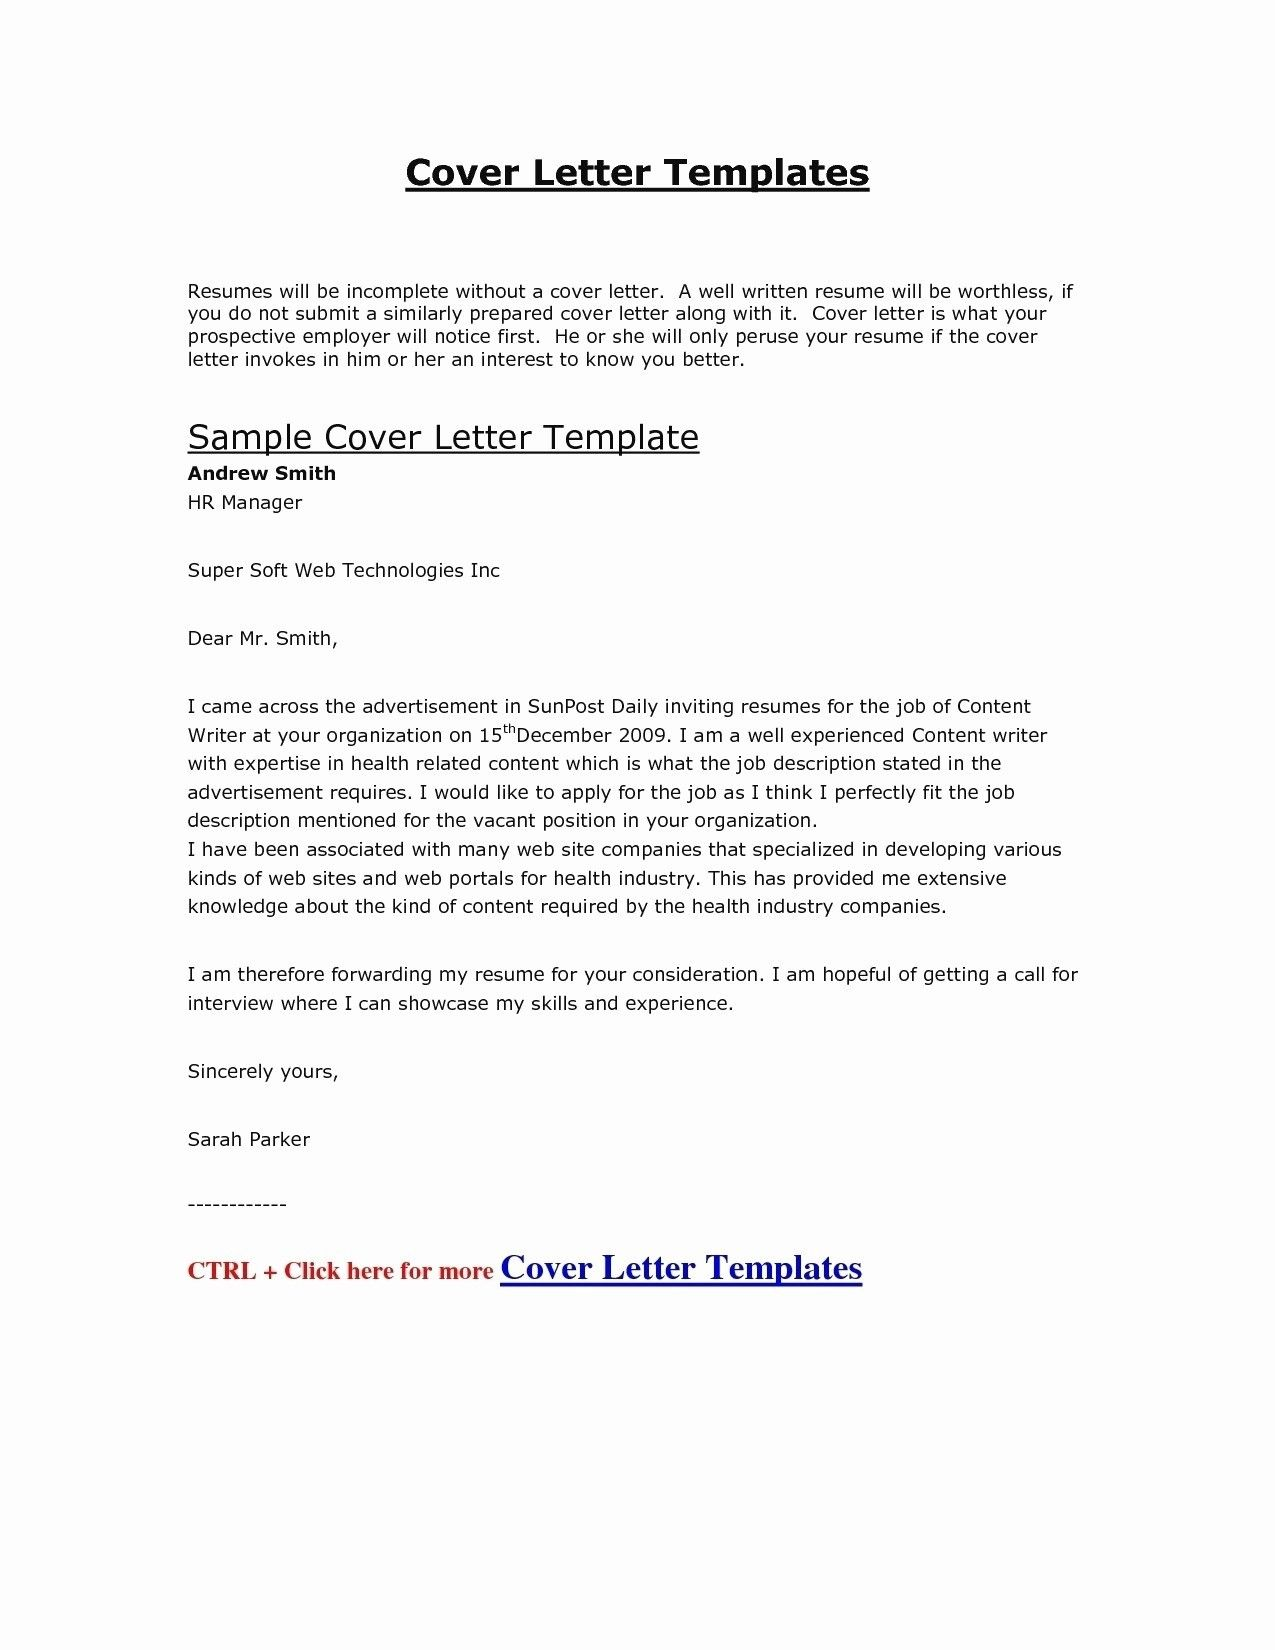 Pin by Waldwert Site on Resume Formats | Job cover letter ...